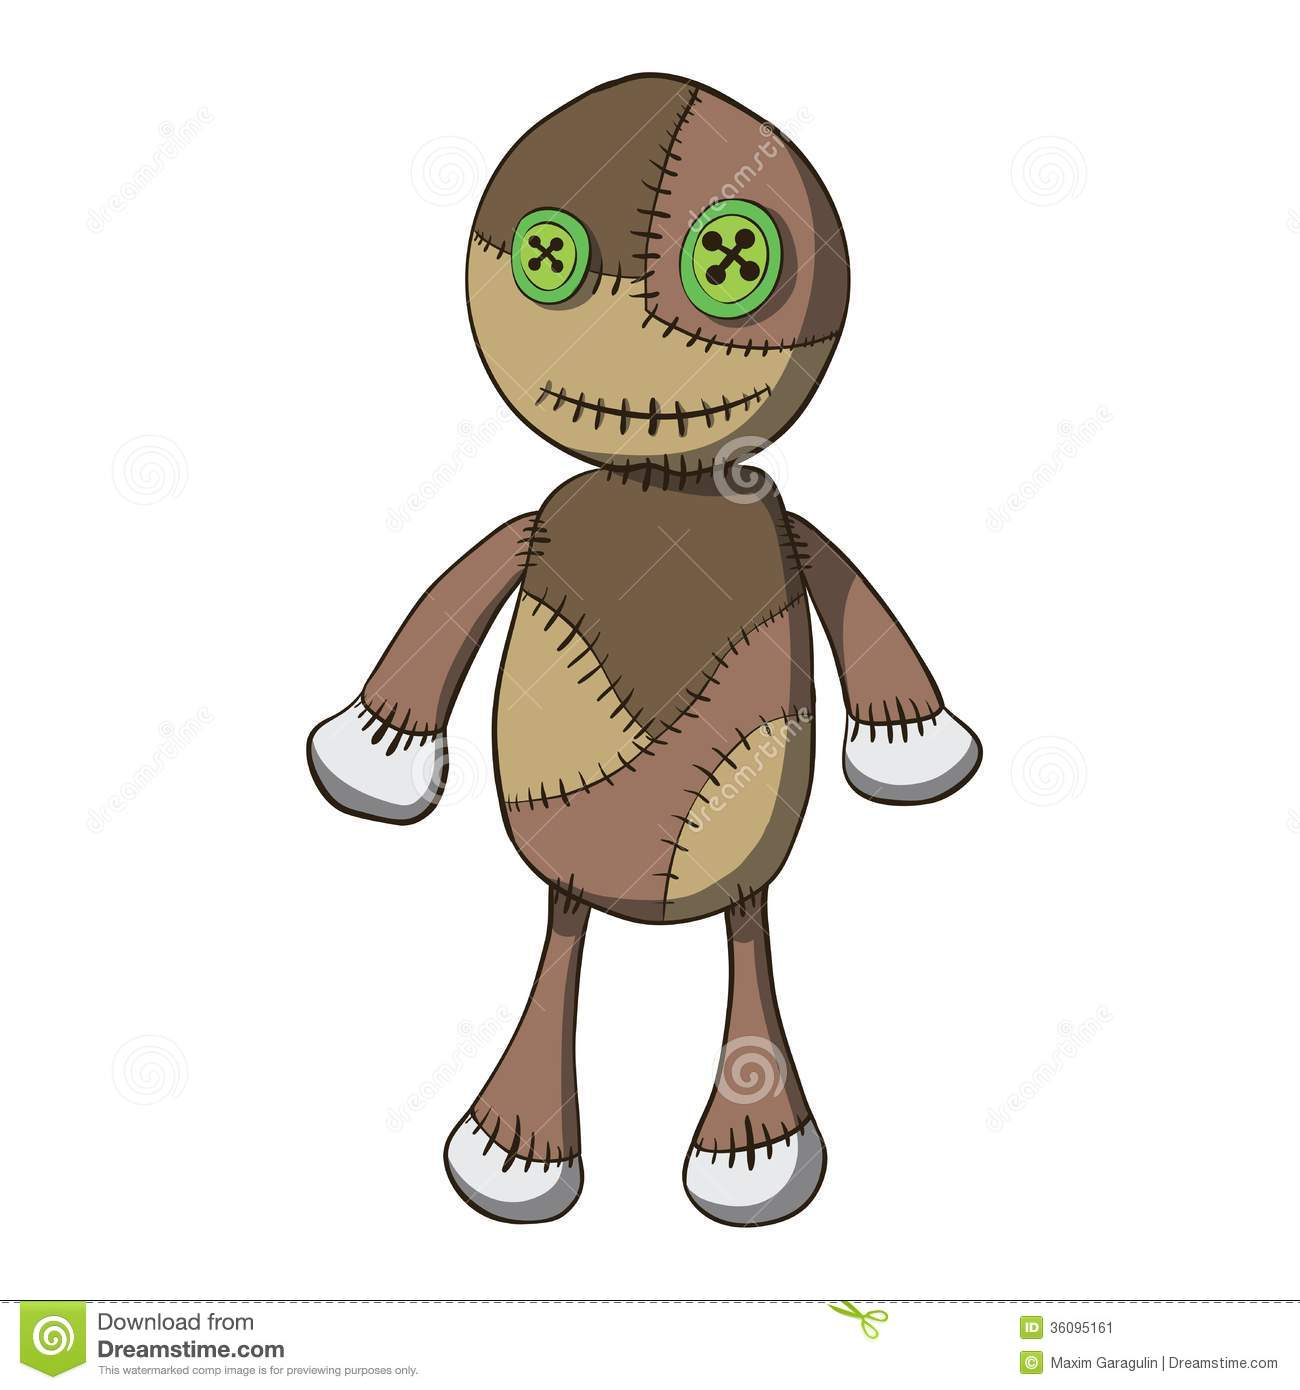 3d Cartoon Doll Clipart - Clipart Kid